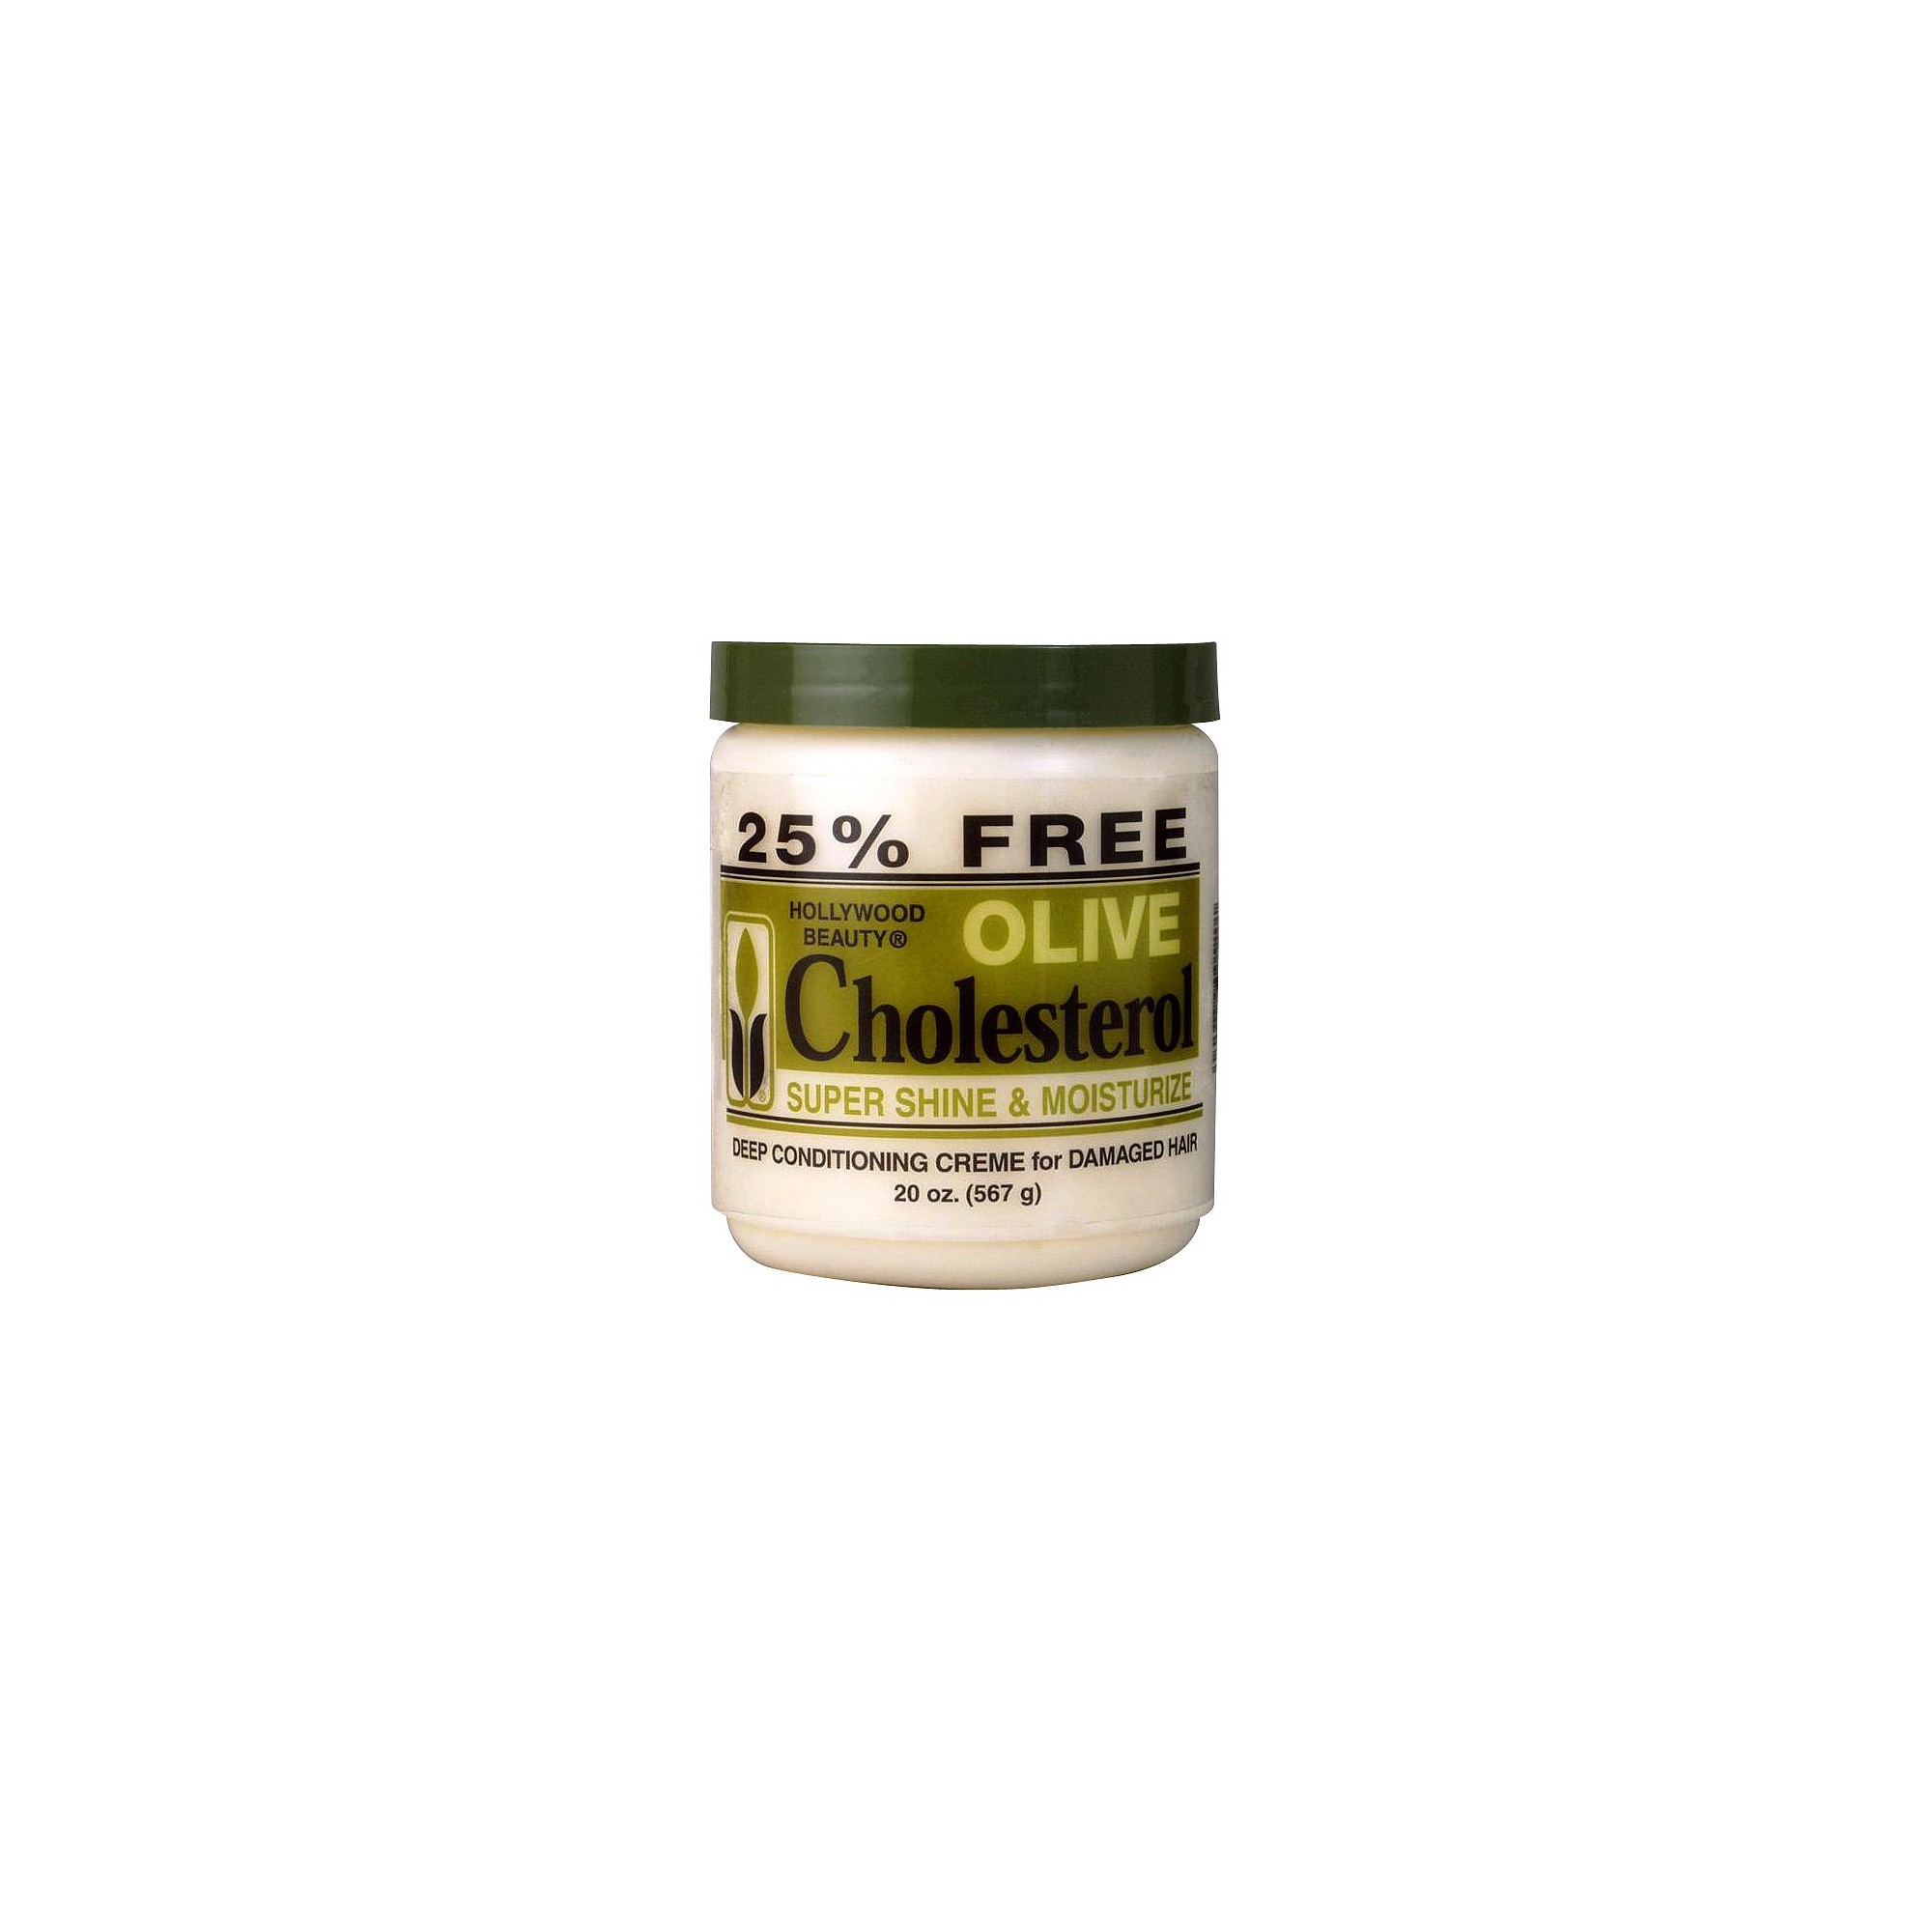 Hollywood Beauty Olive Cholesterol Deep Conditioning Creme for Damaged Hair - 20 oz